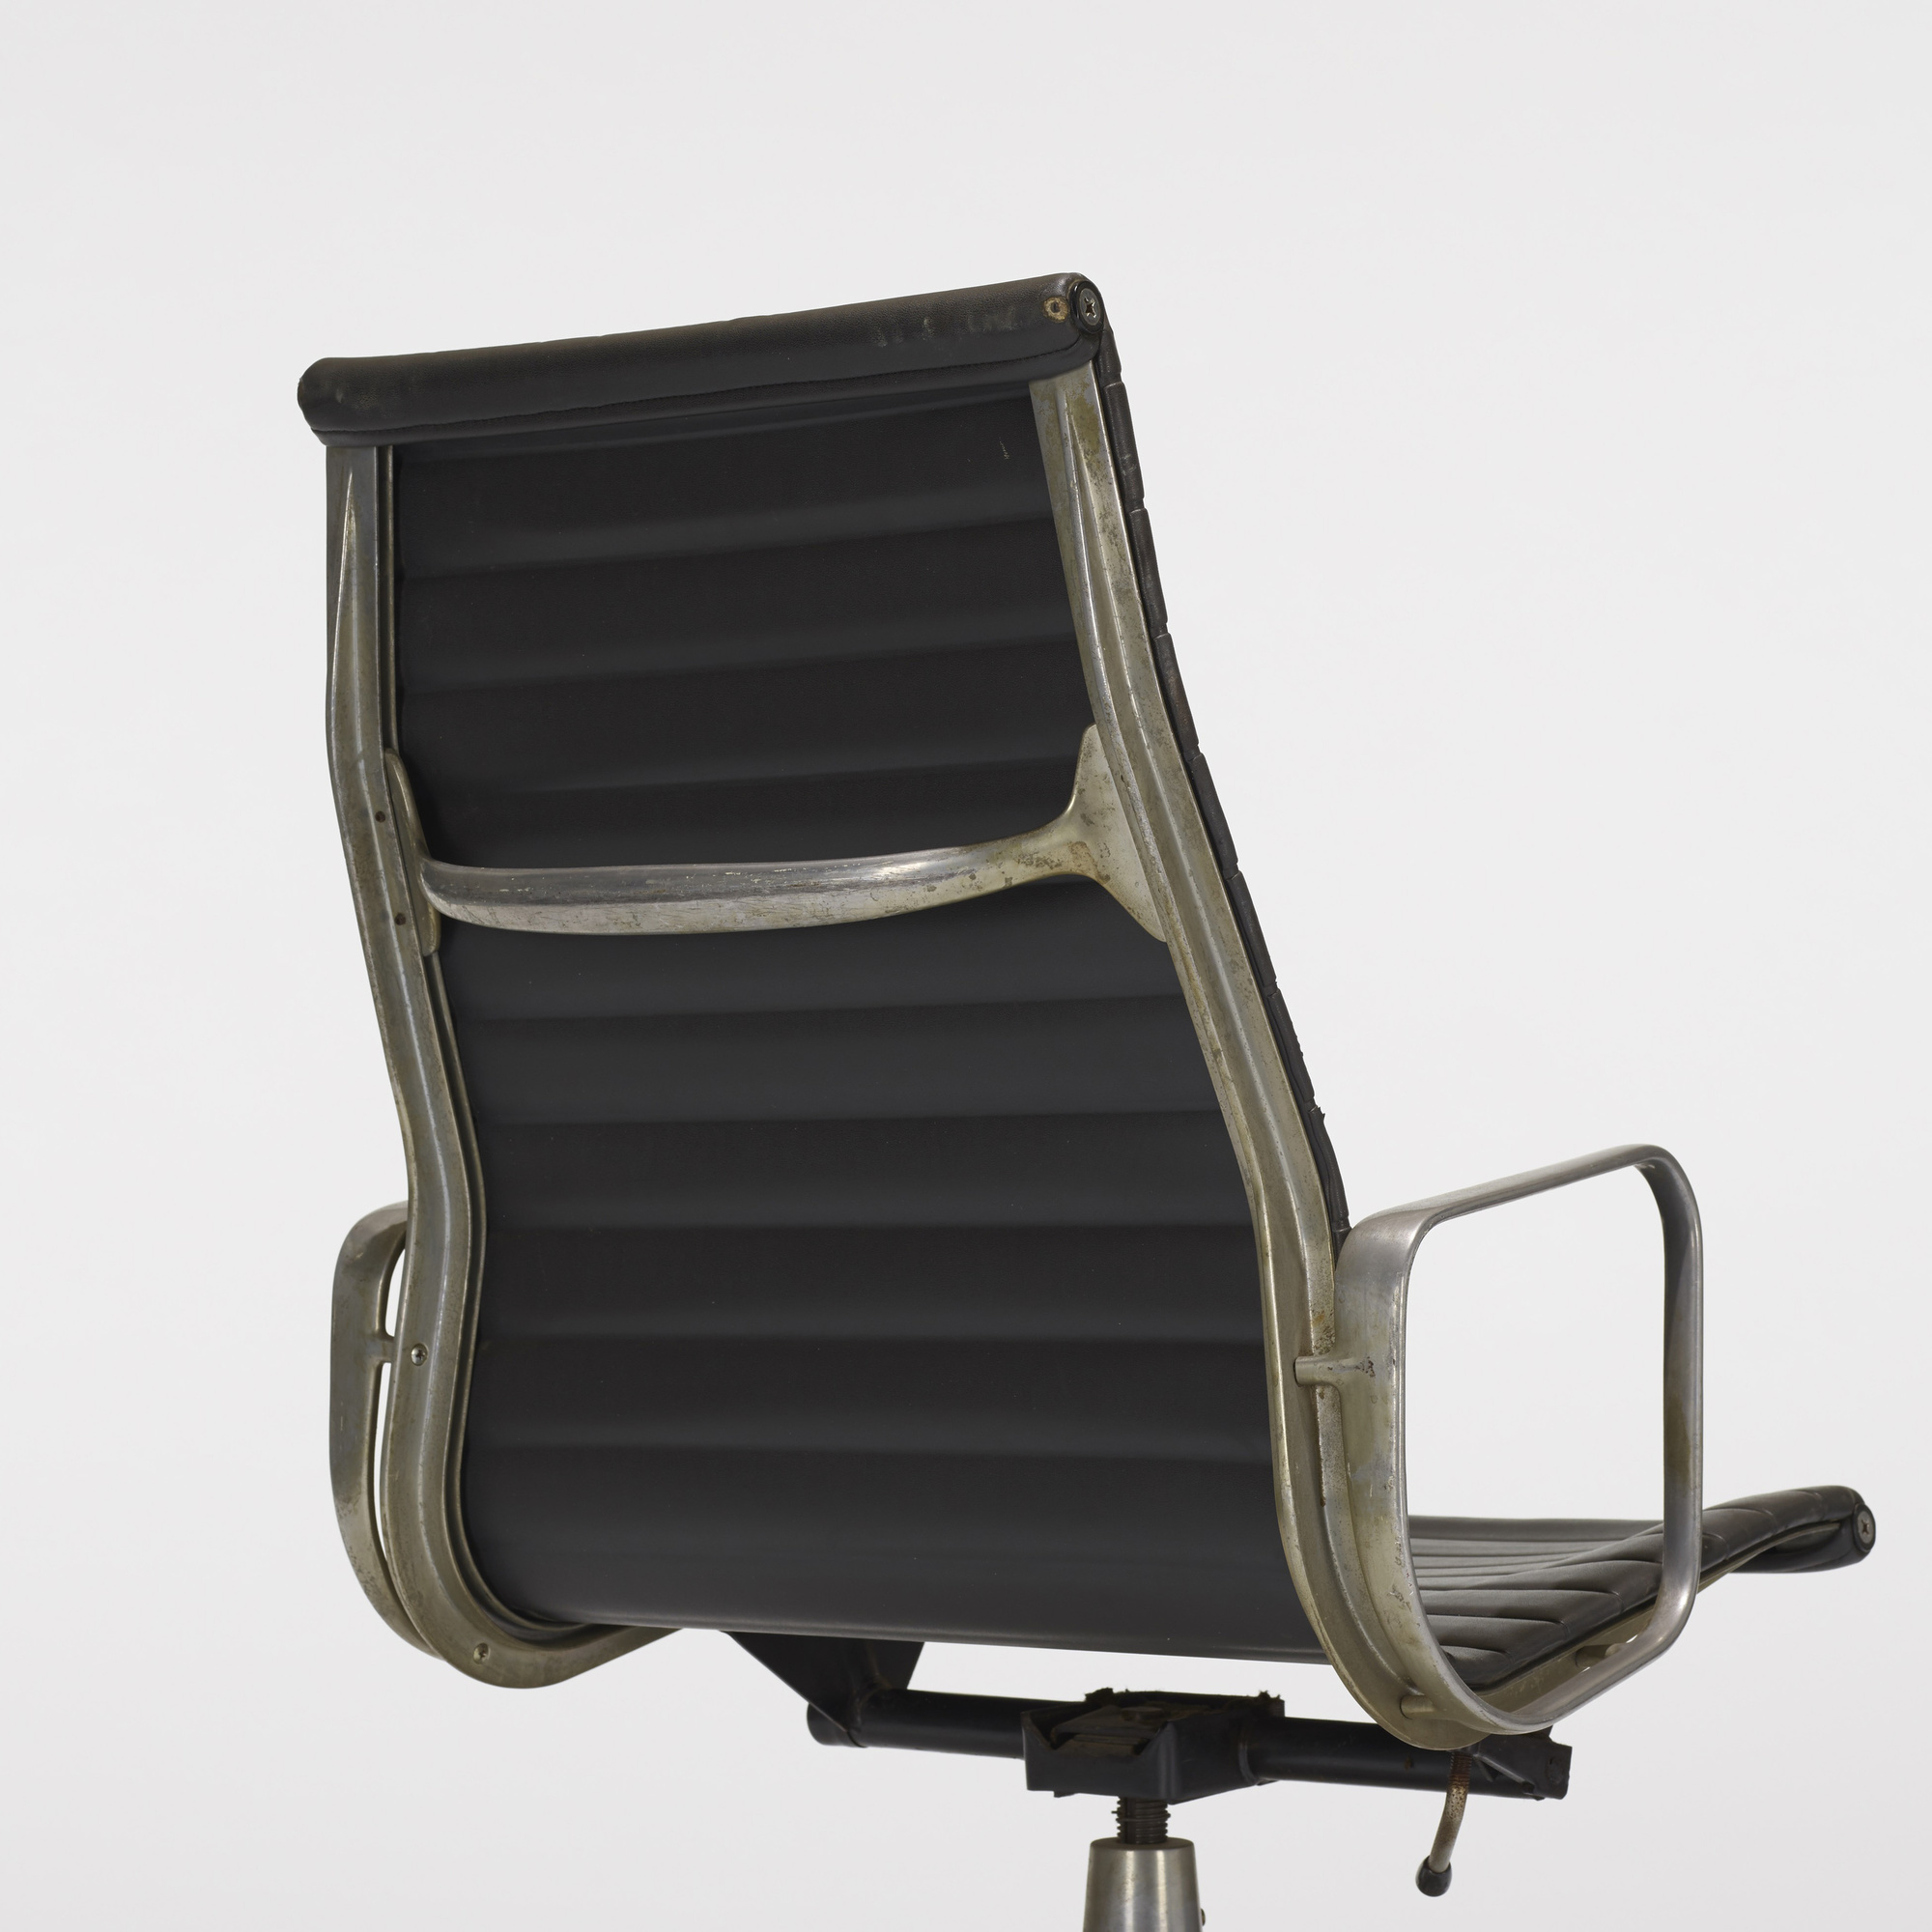 221: Charles and Ray Eames / Aluminum Group lounge chair (3 of 3)